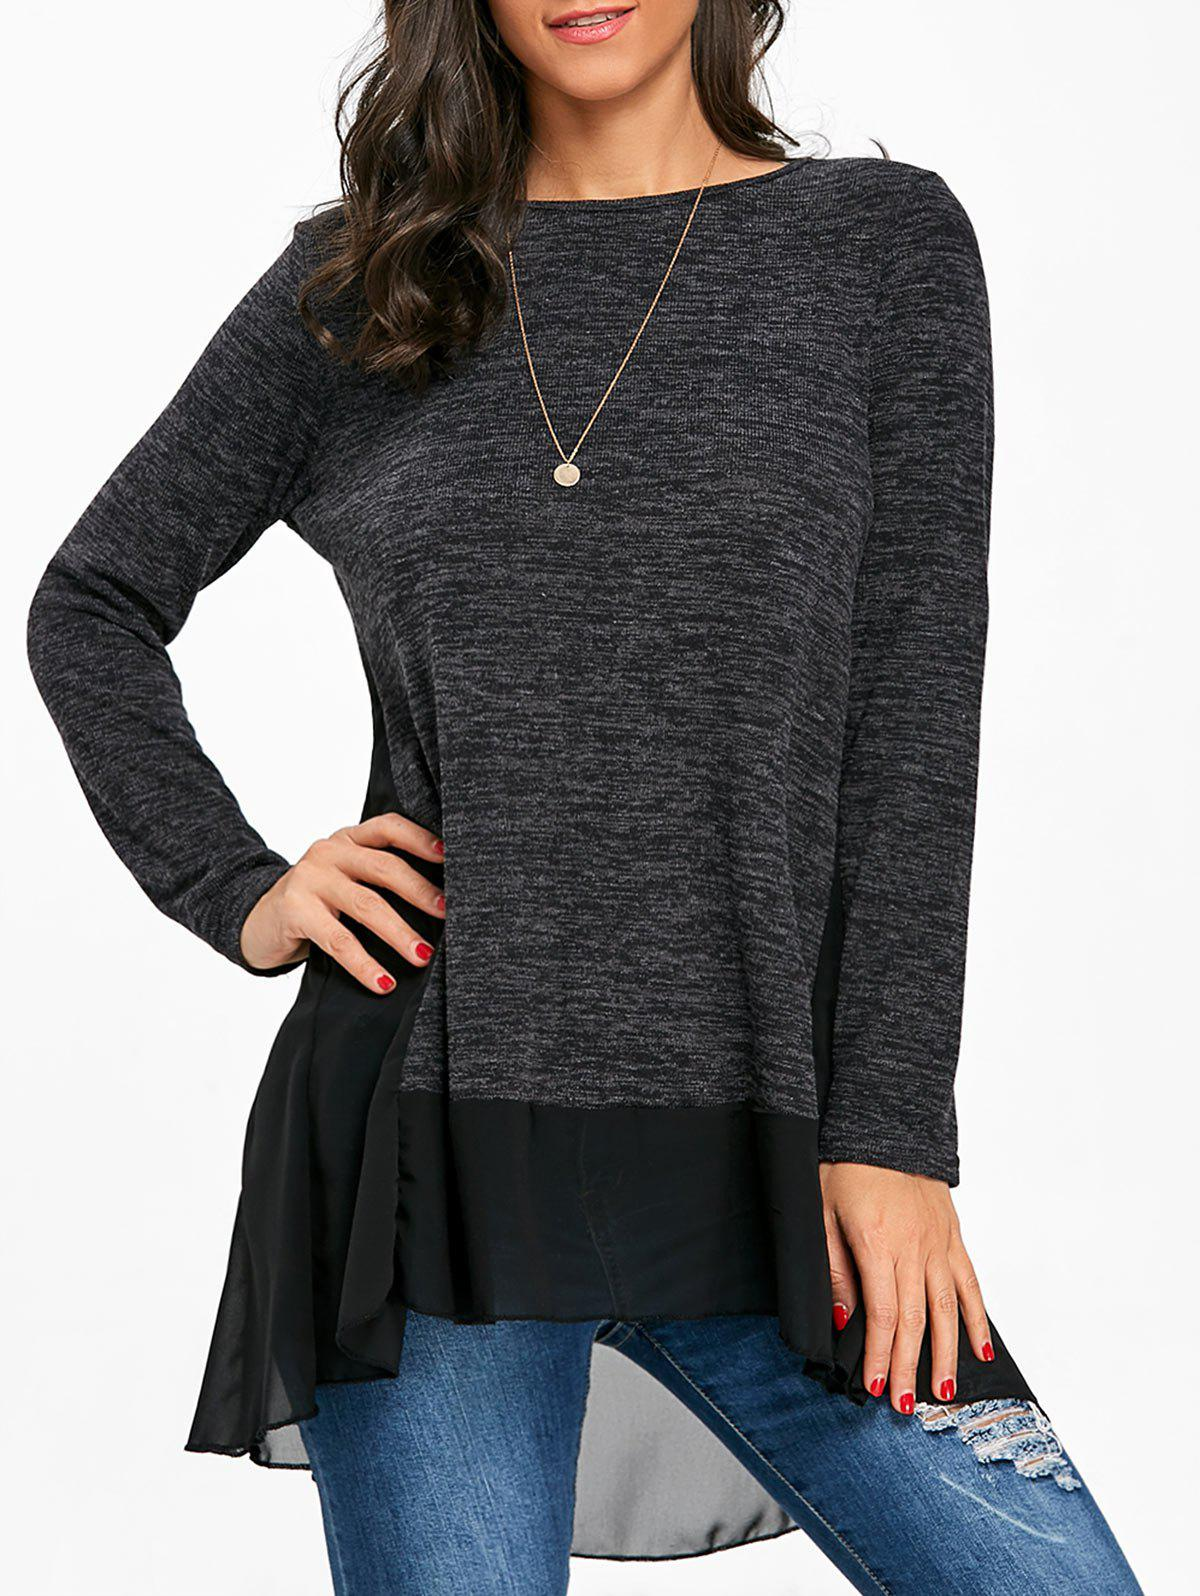 Heather Chiffon Trimmed Long Sleeve Top - BLACK S